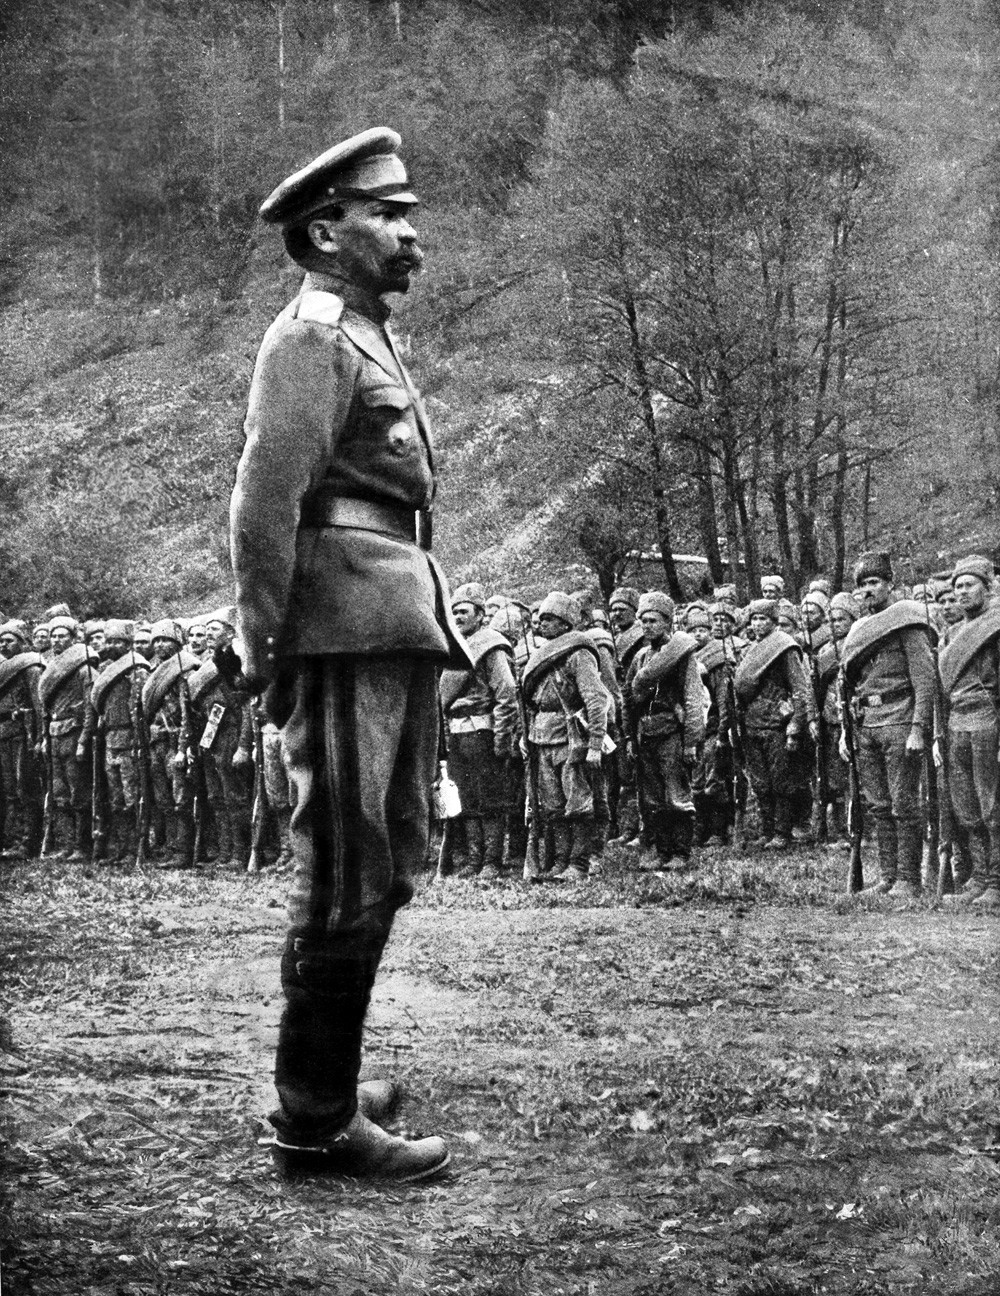 General Kornilov inspecting Russian troops, 1st July 1917.